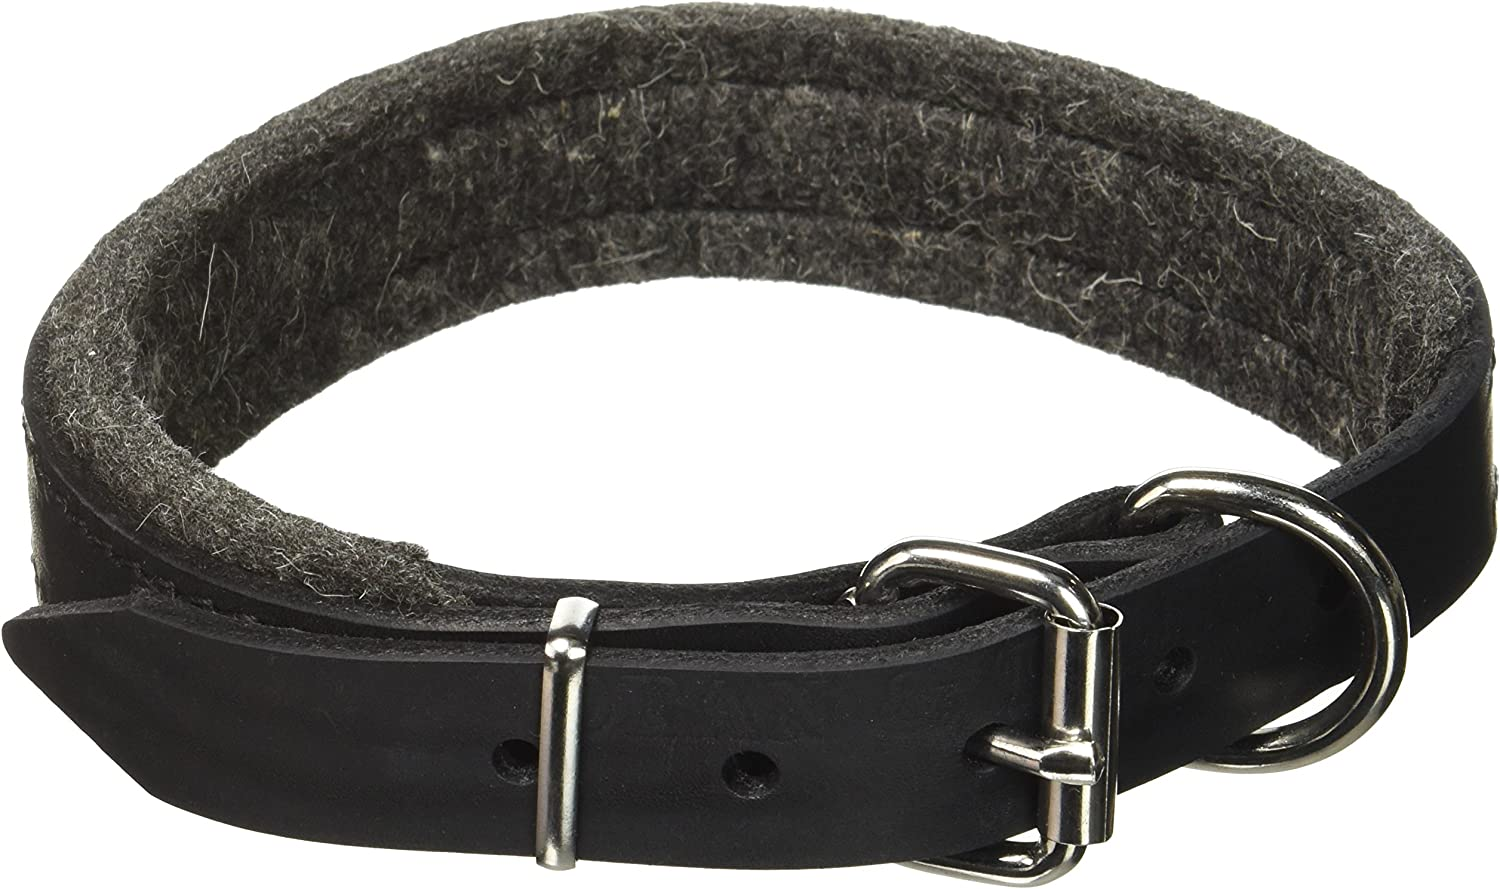 Dean and Tyler DT Delight, Leather Dog Collar with Felt Padding and Strong Hardware  Black  Size 18Inch by 1Inch  Fits Neck 16Inch to 20Inch